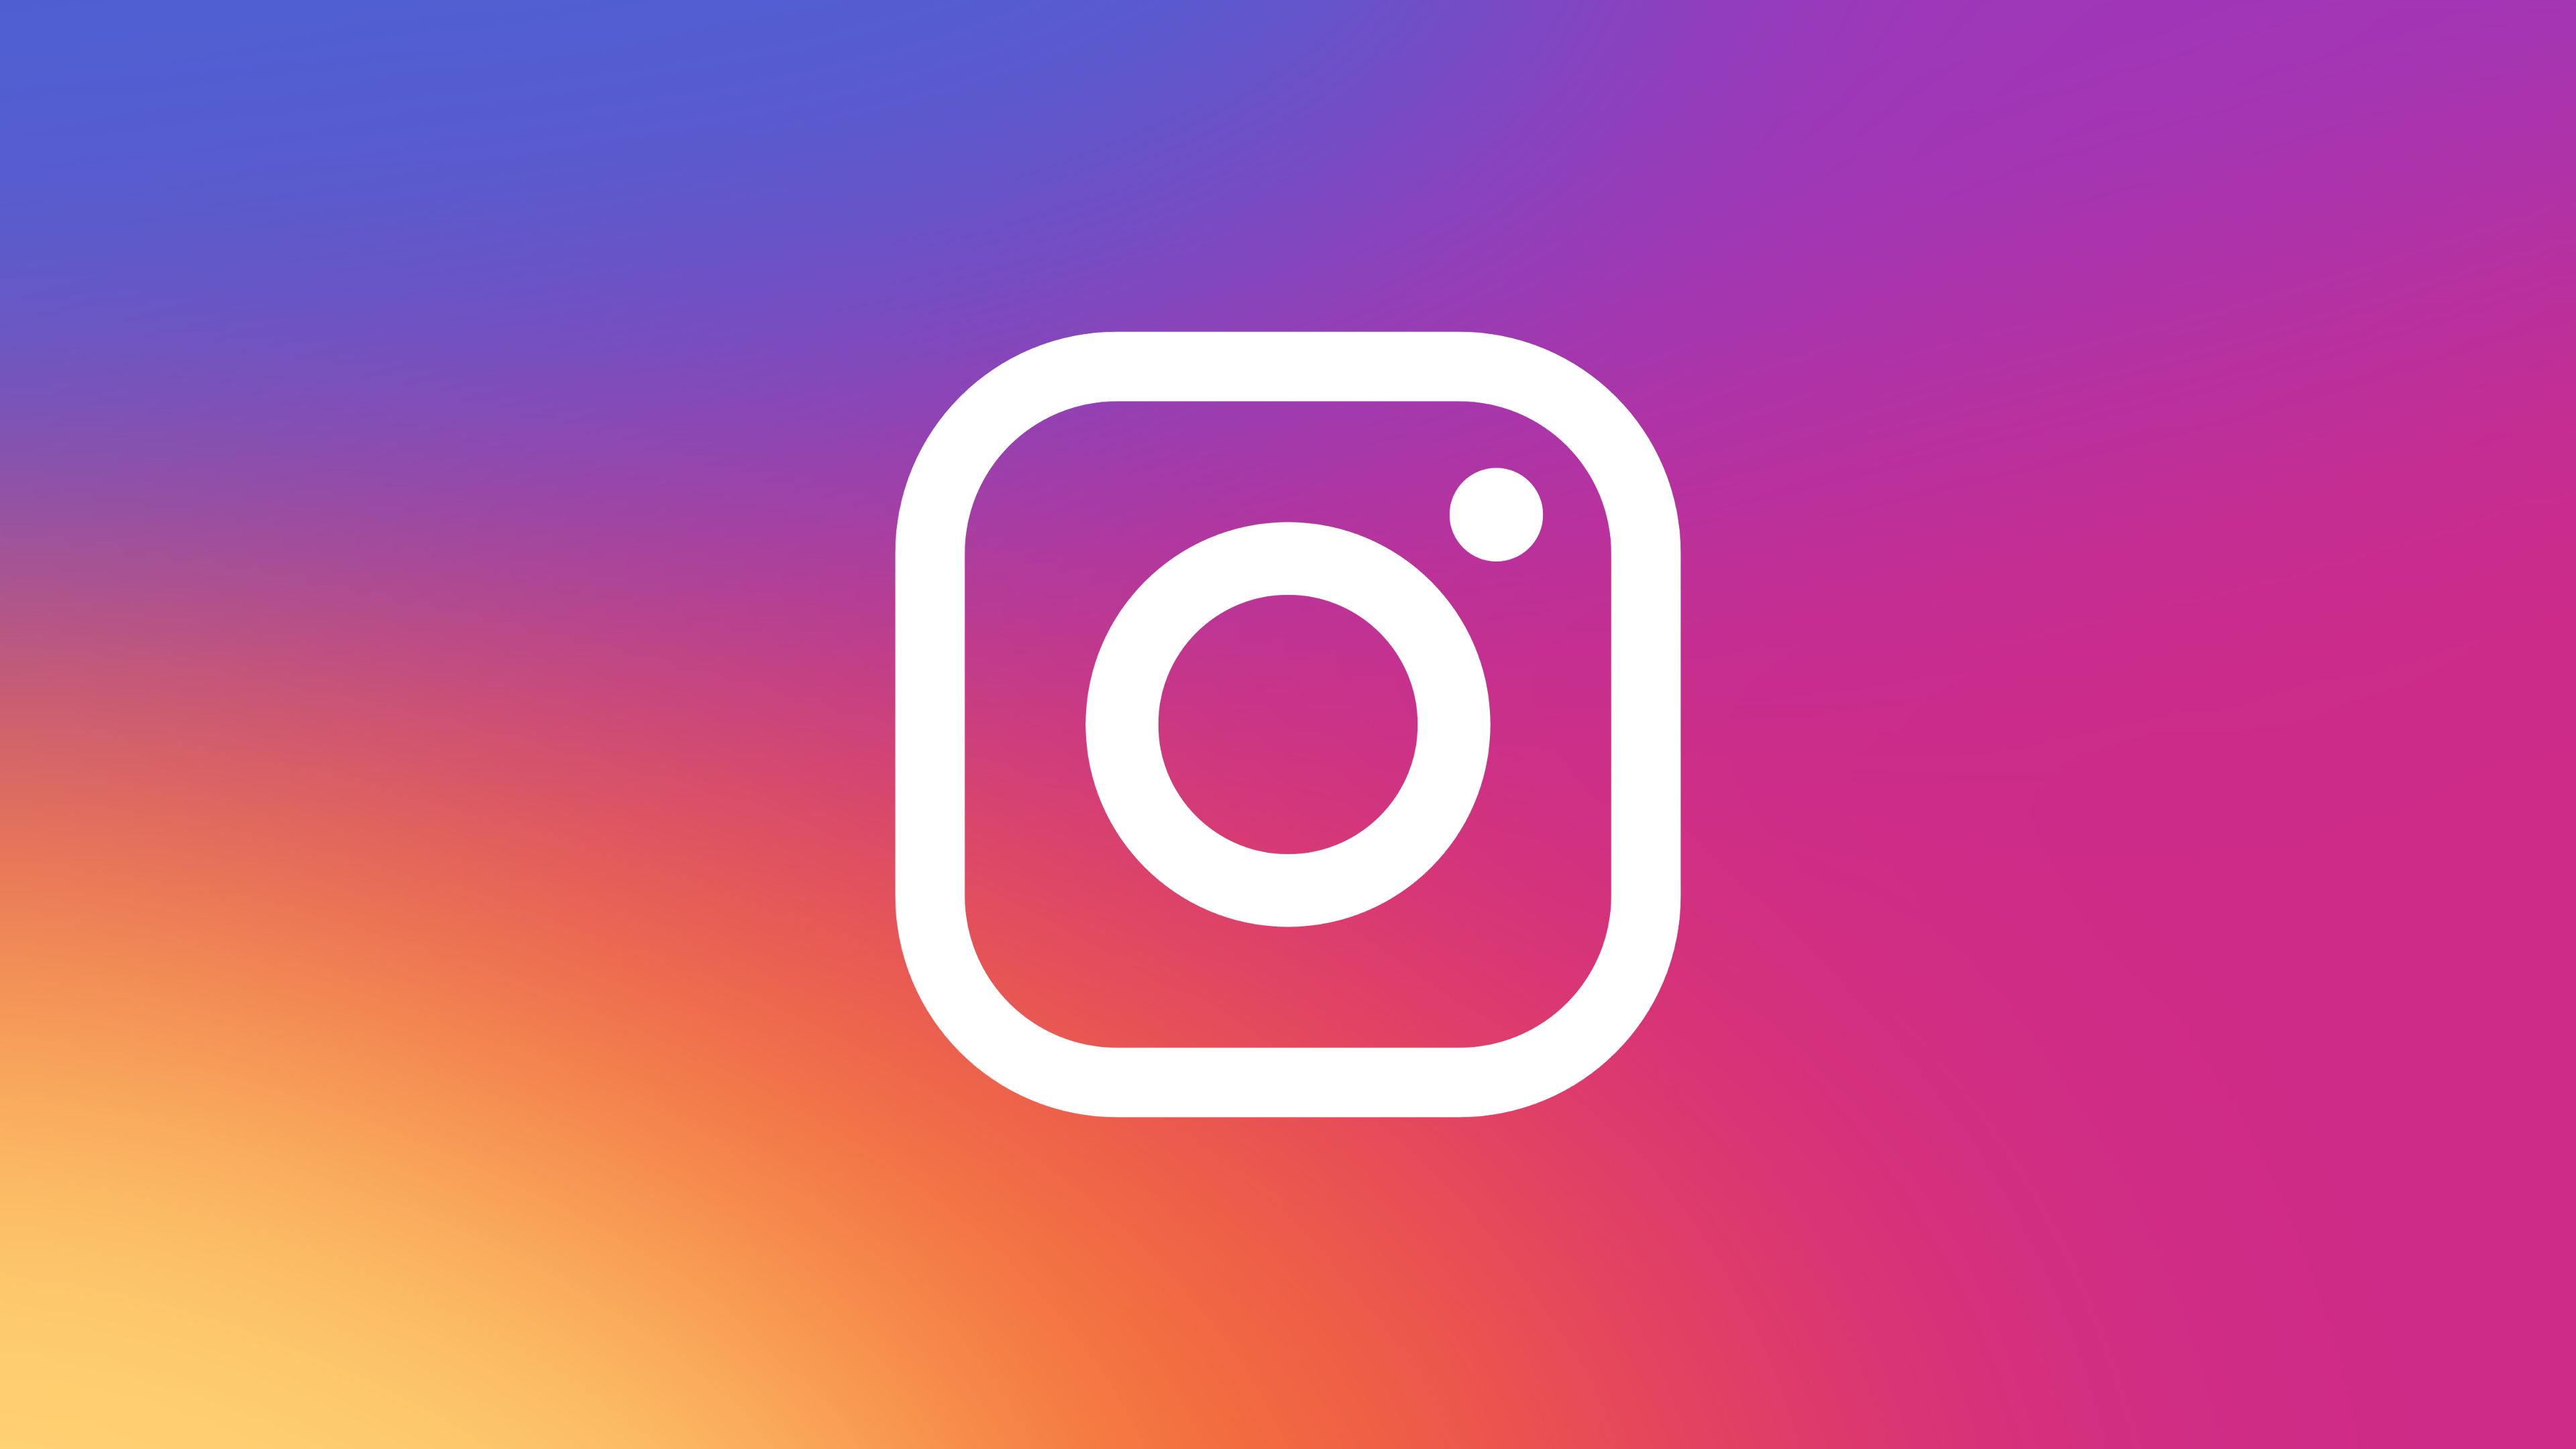 A white Instagram logo (which looks like the outine of a camera) on a colourful gradient background